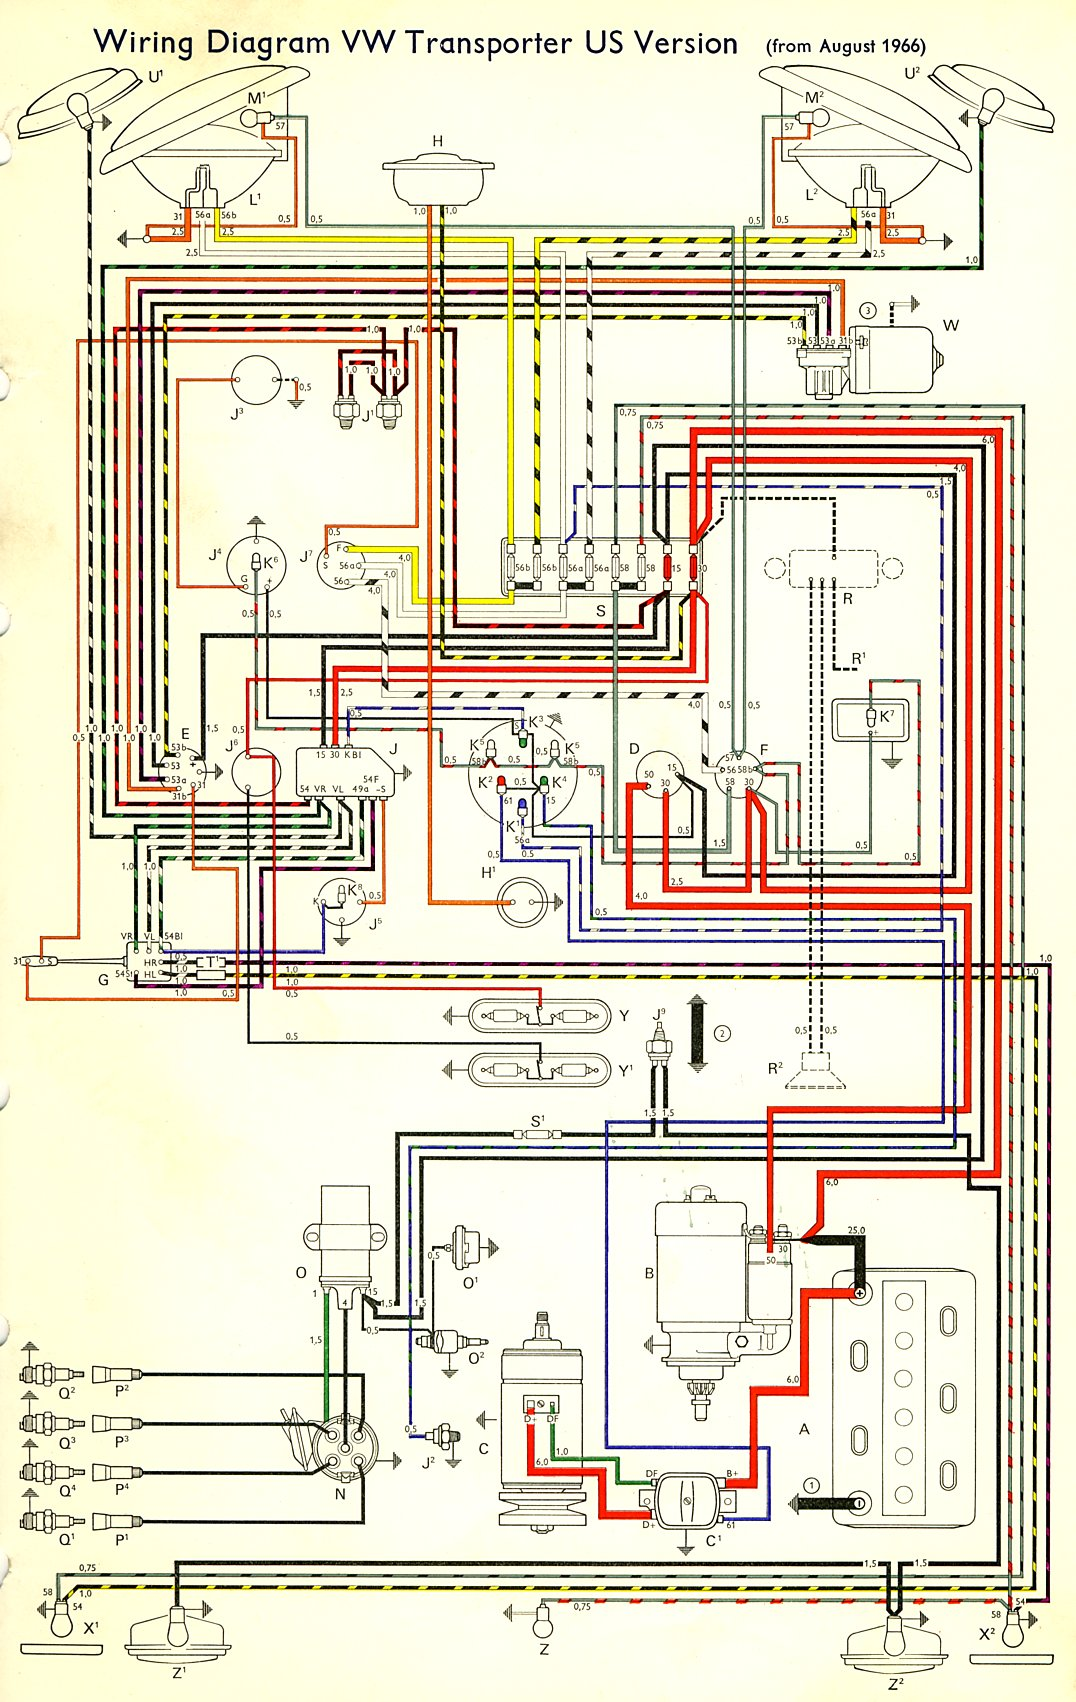 hight resolution of thesamba com type 2 wiring diagrams rh thesamba com 1968 volkswagen beetle wiring diagram vw buggy wiring diagram